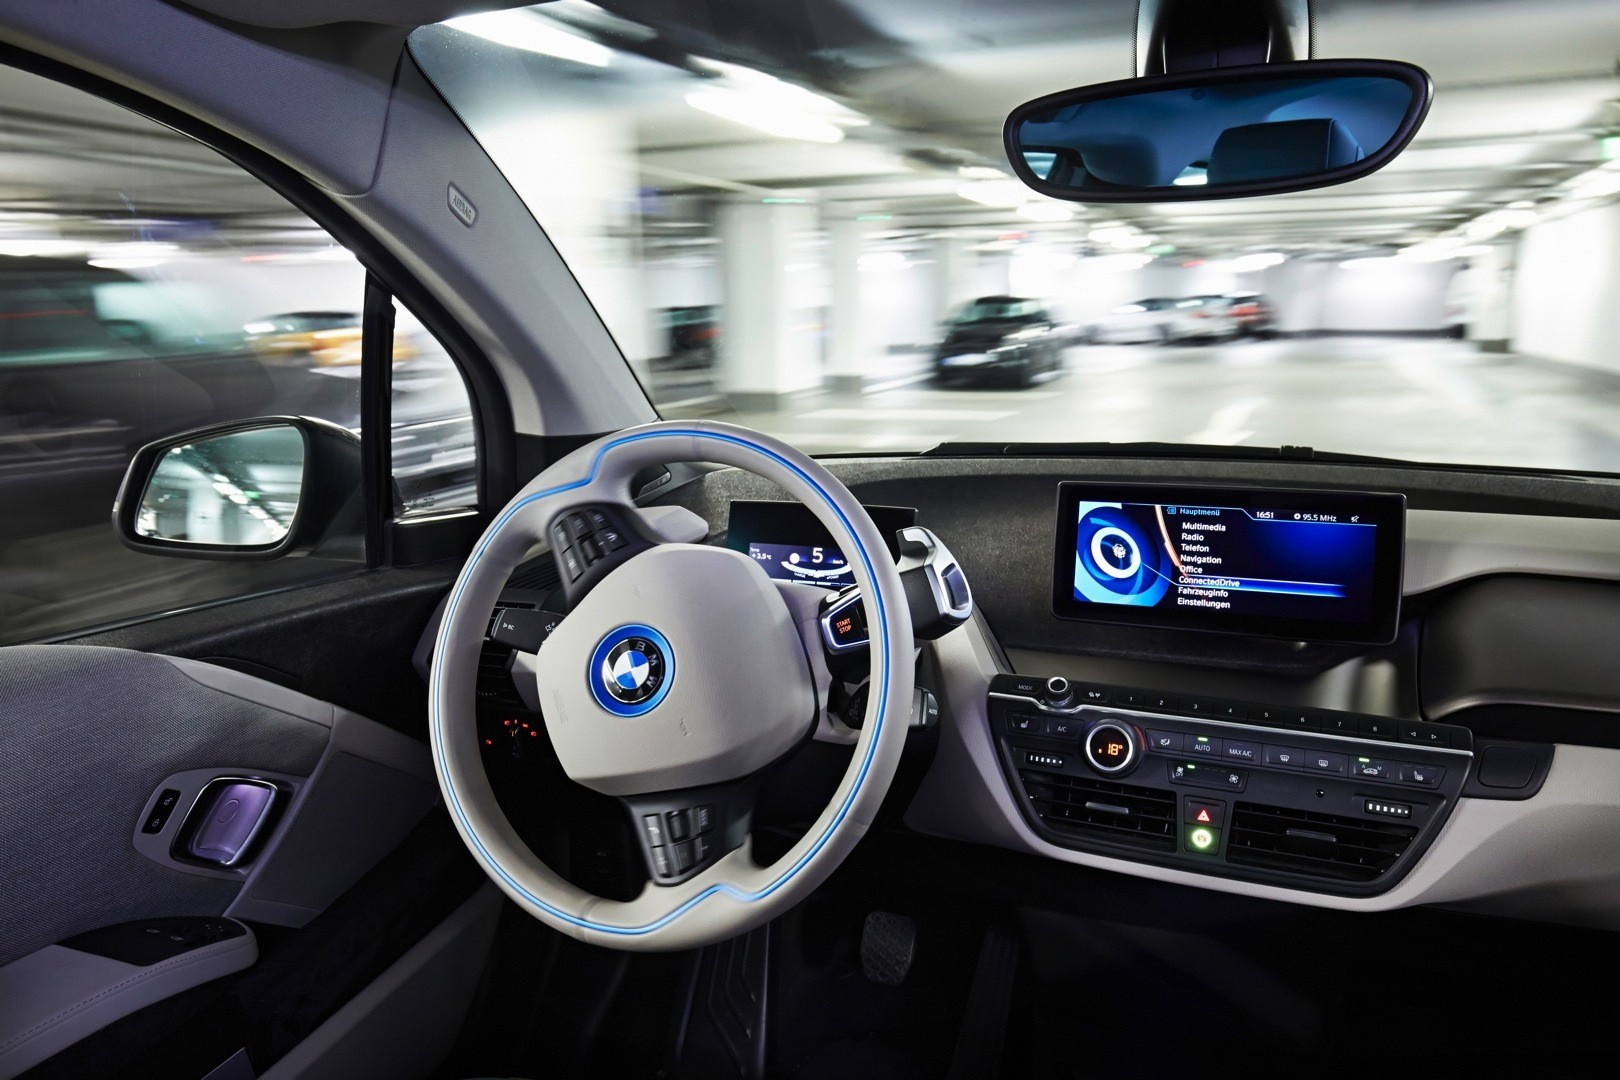 bmw-will-bring-a-fully-automated-parking-i3-at-2015-ces-previewing-2016-7-series-functionality_7